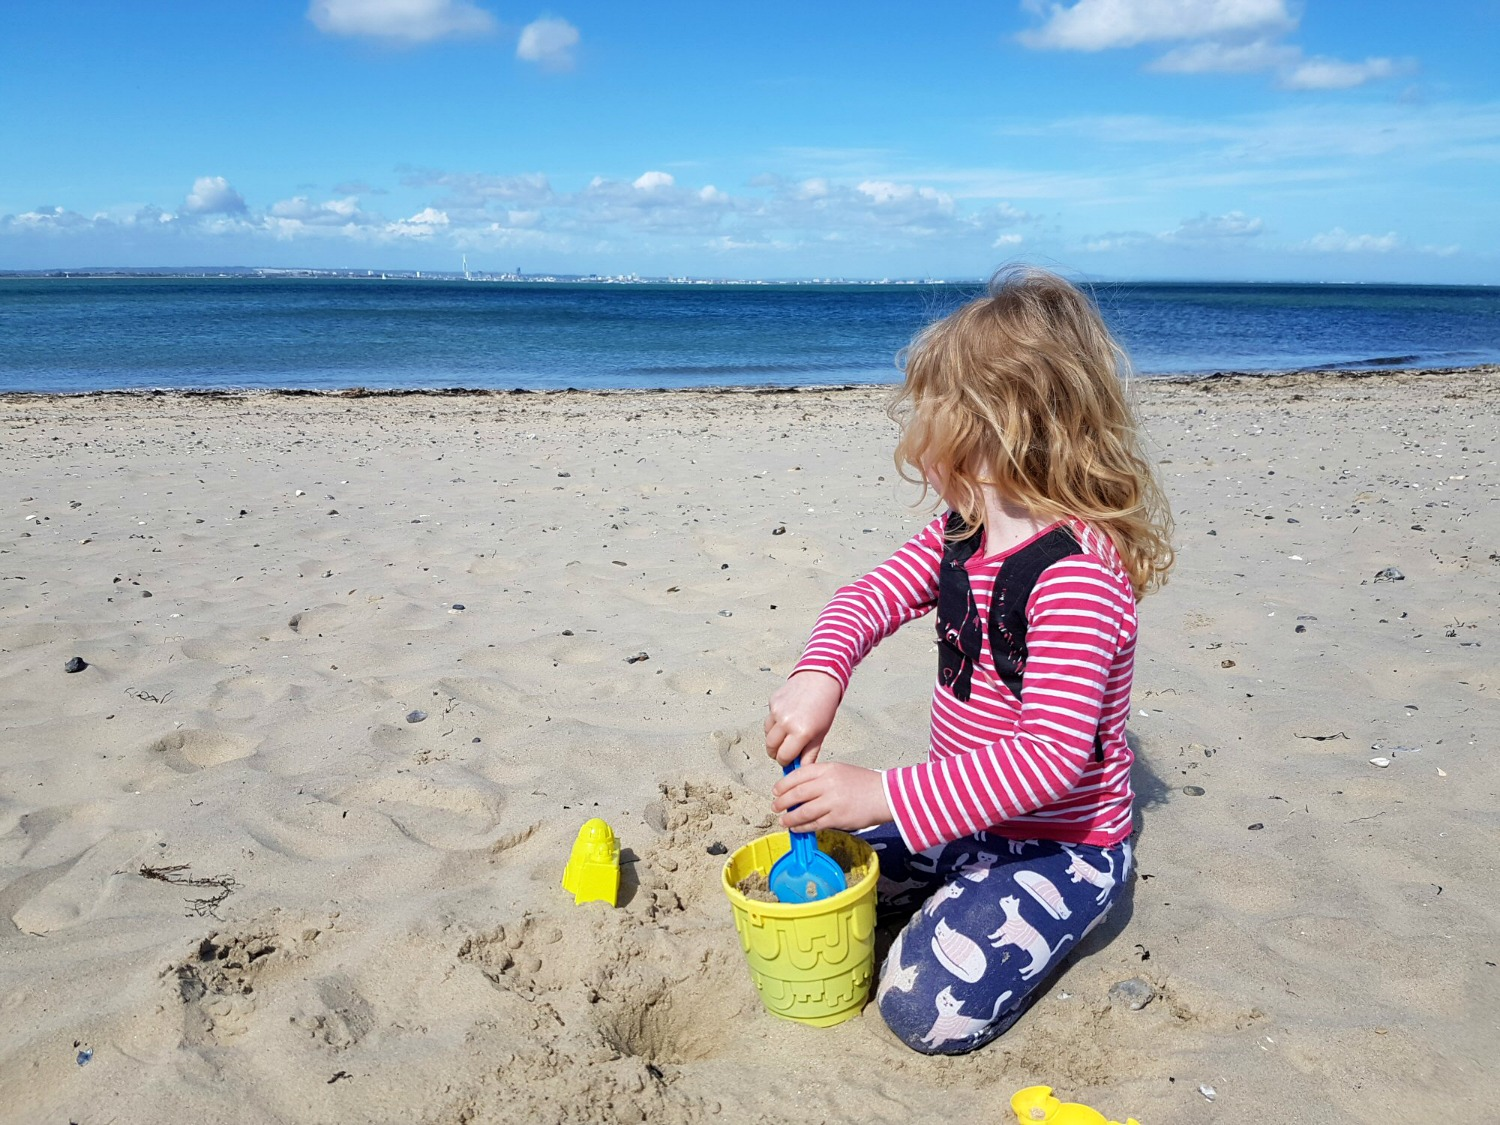 My daughter with bucket and spade on the beach at Appley near Ryde, looking back towards Portsmouth - discovering the Isle of Wight coast